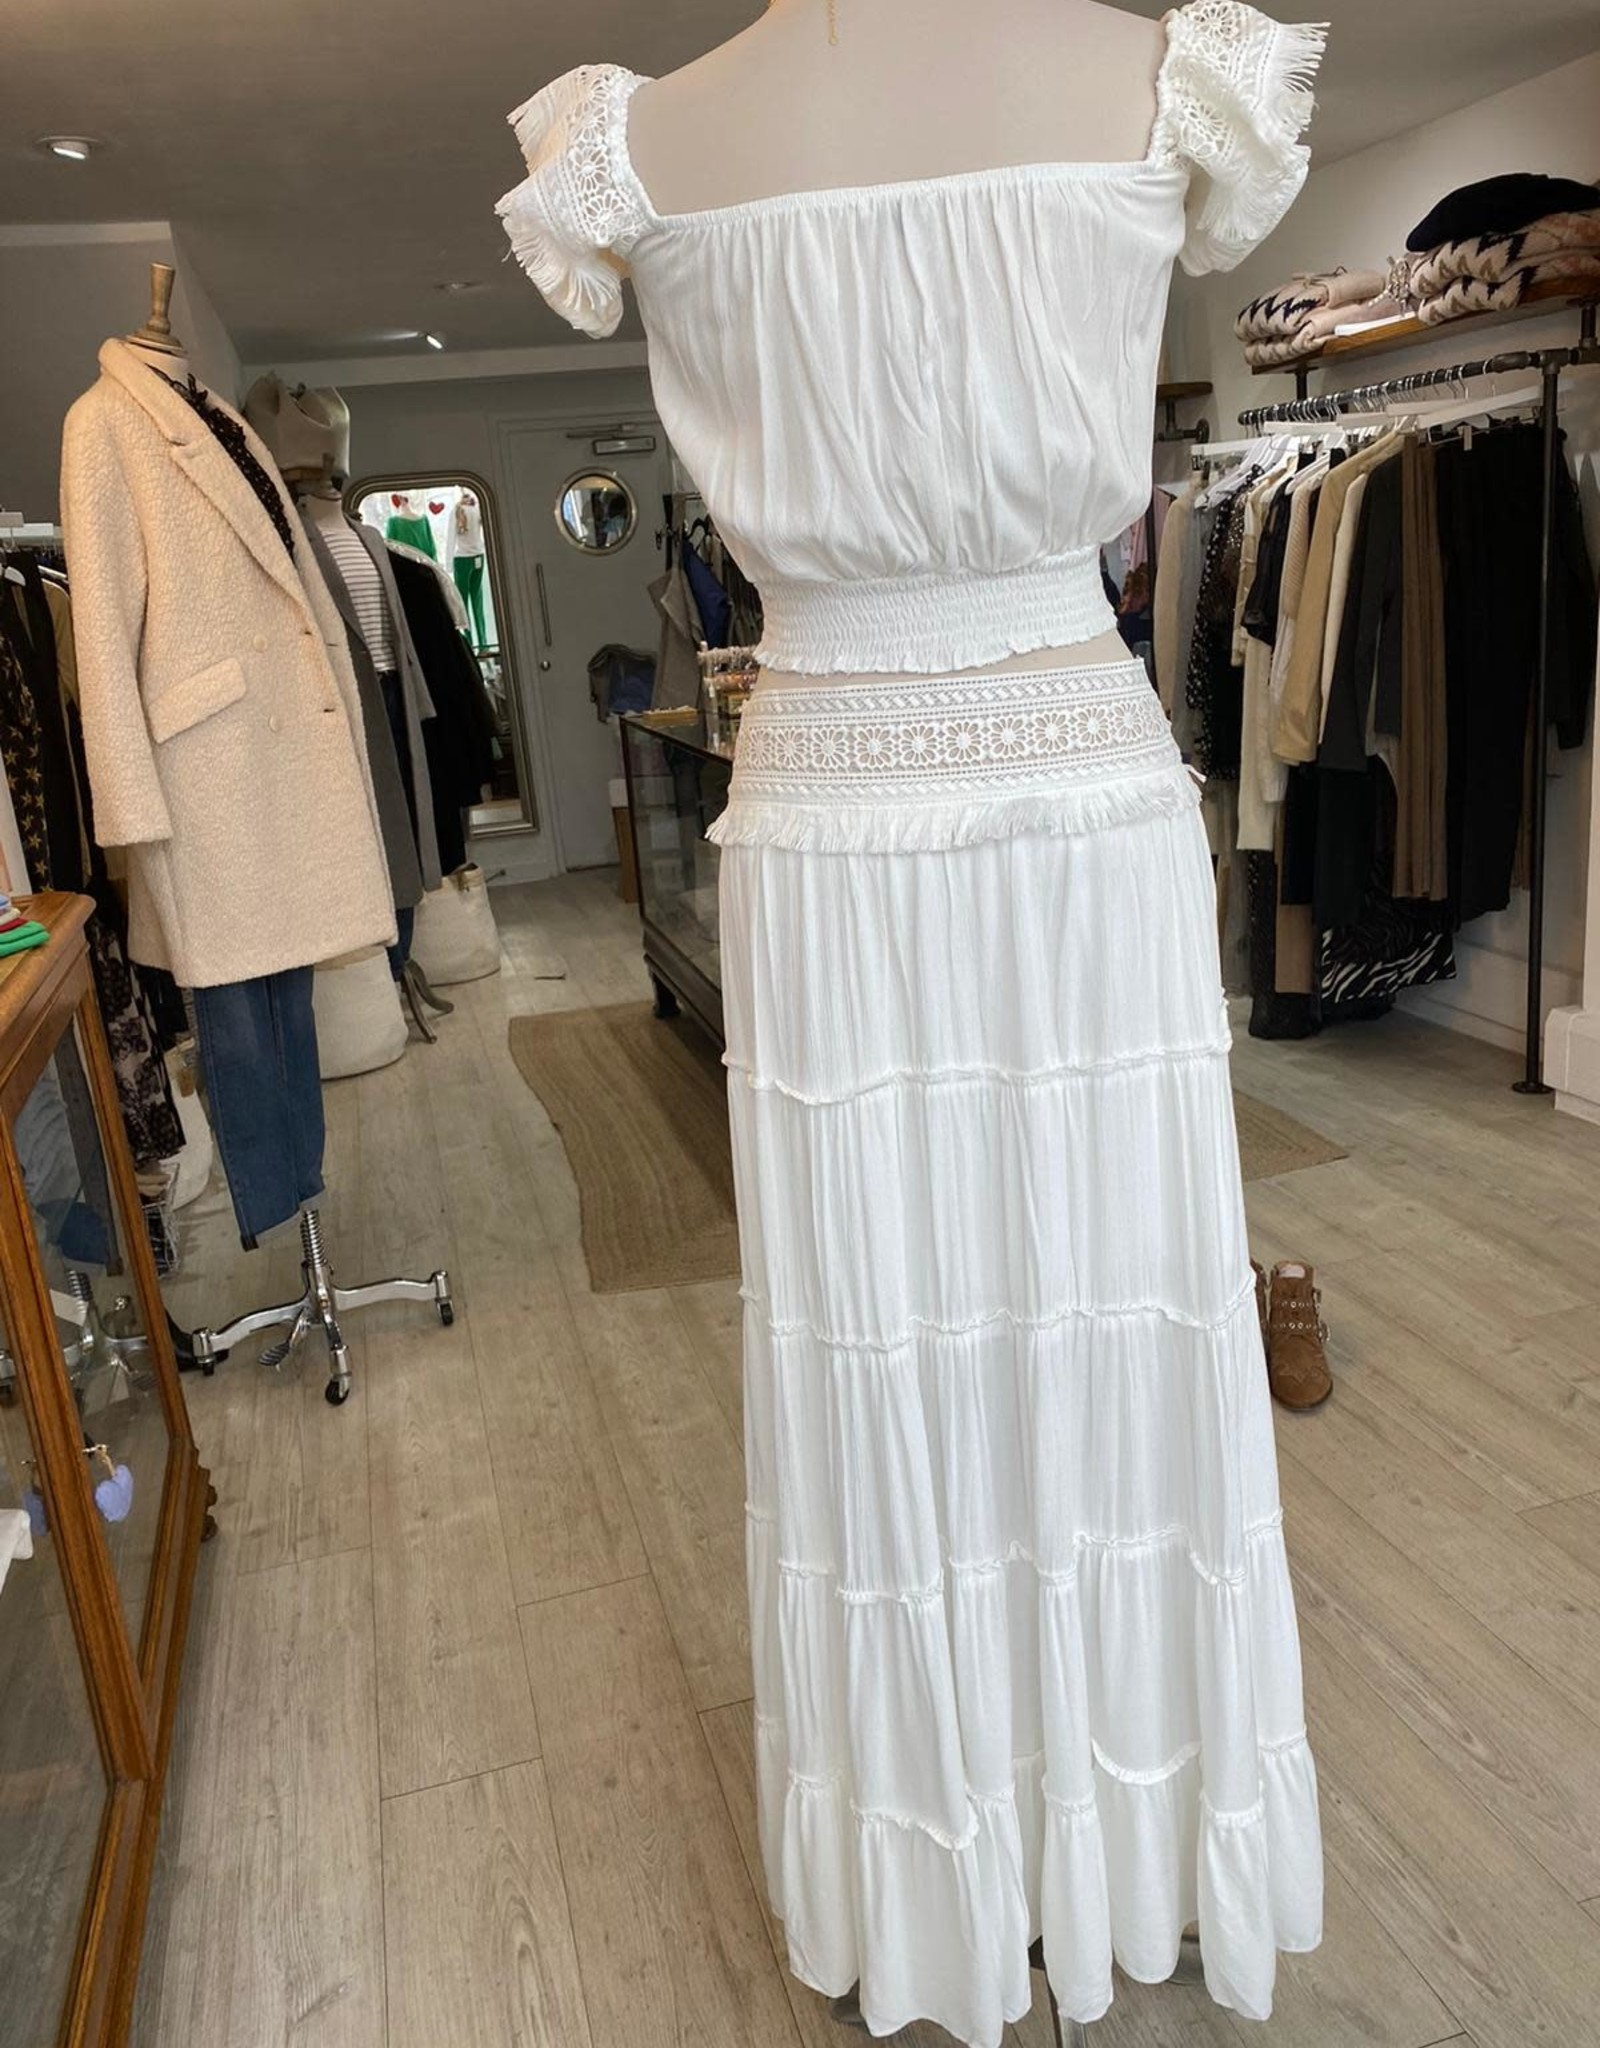 THE NATURAL PEOPLE LUXURY LINEN  BEACH WEAR TNP 003 / 004 2-PIECE SET: BLOUSE WITH FRINGE AND MAXI SKIRT